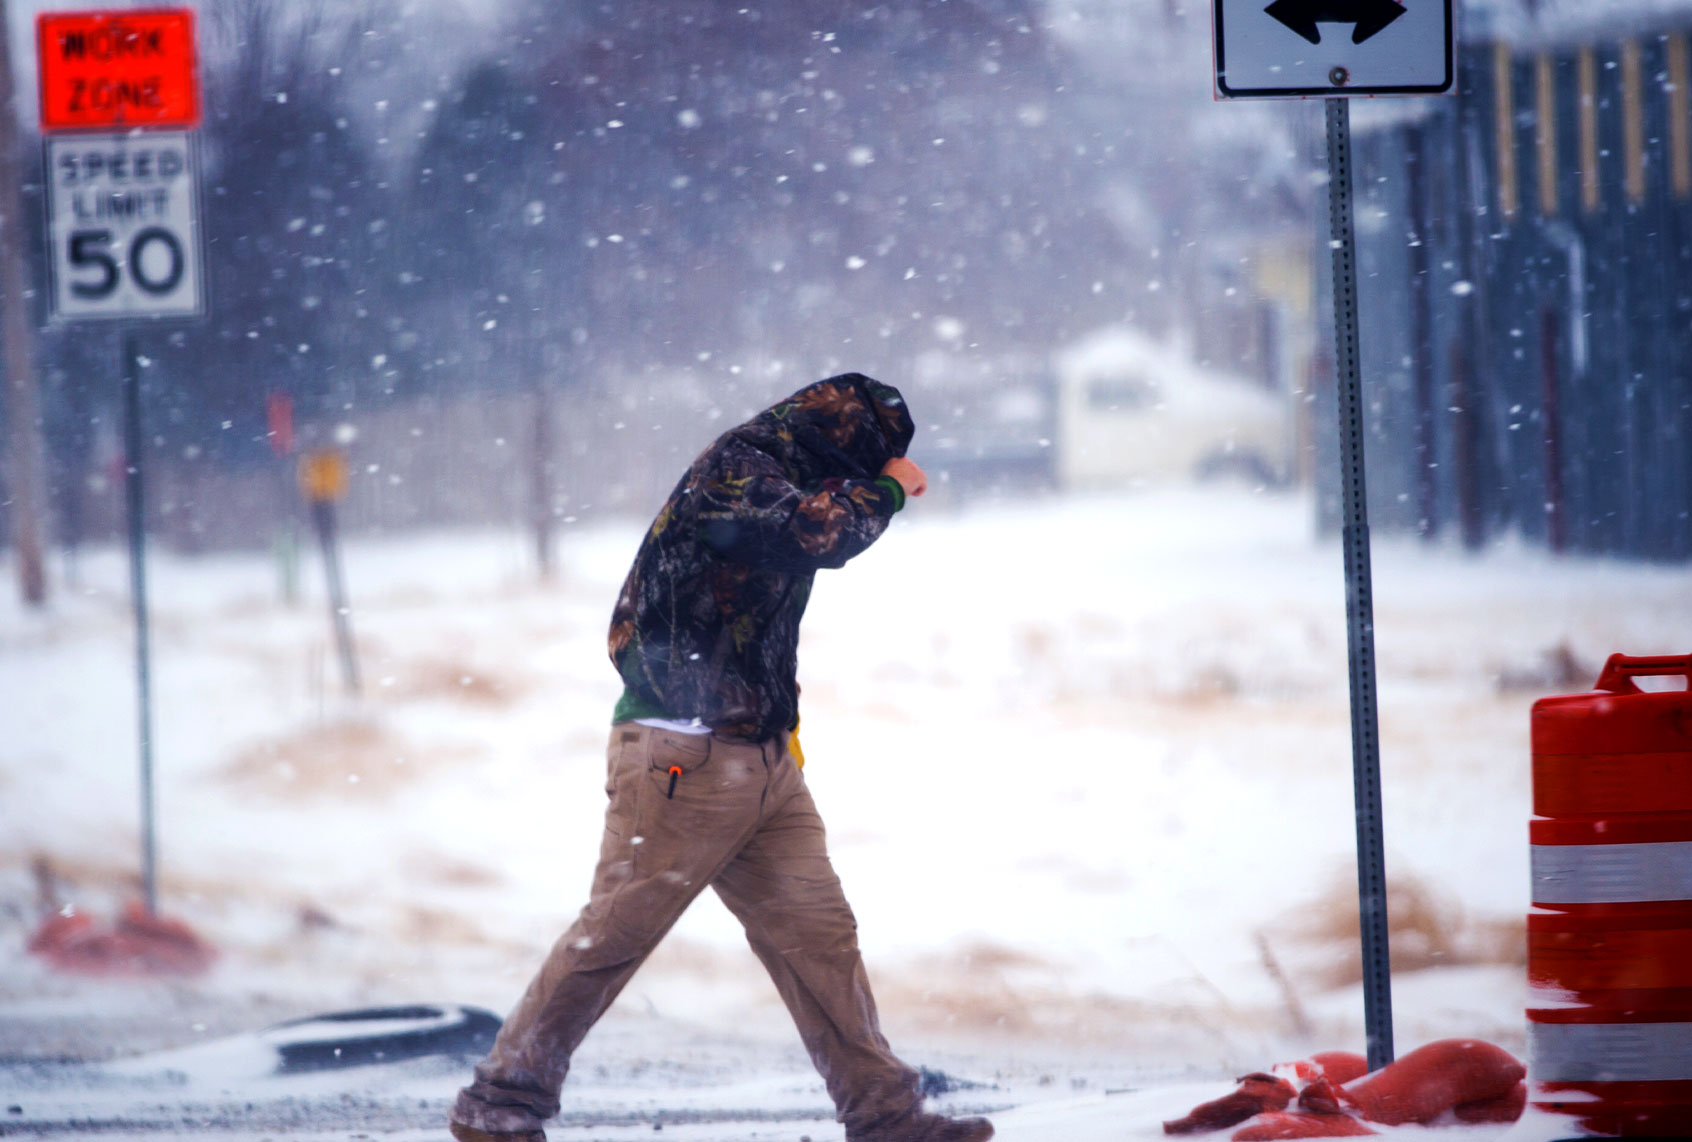 Your genetics affect how resilient you are to cold temperatures: new research